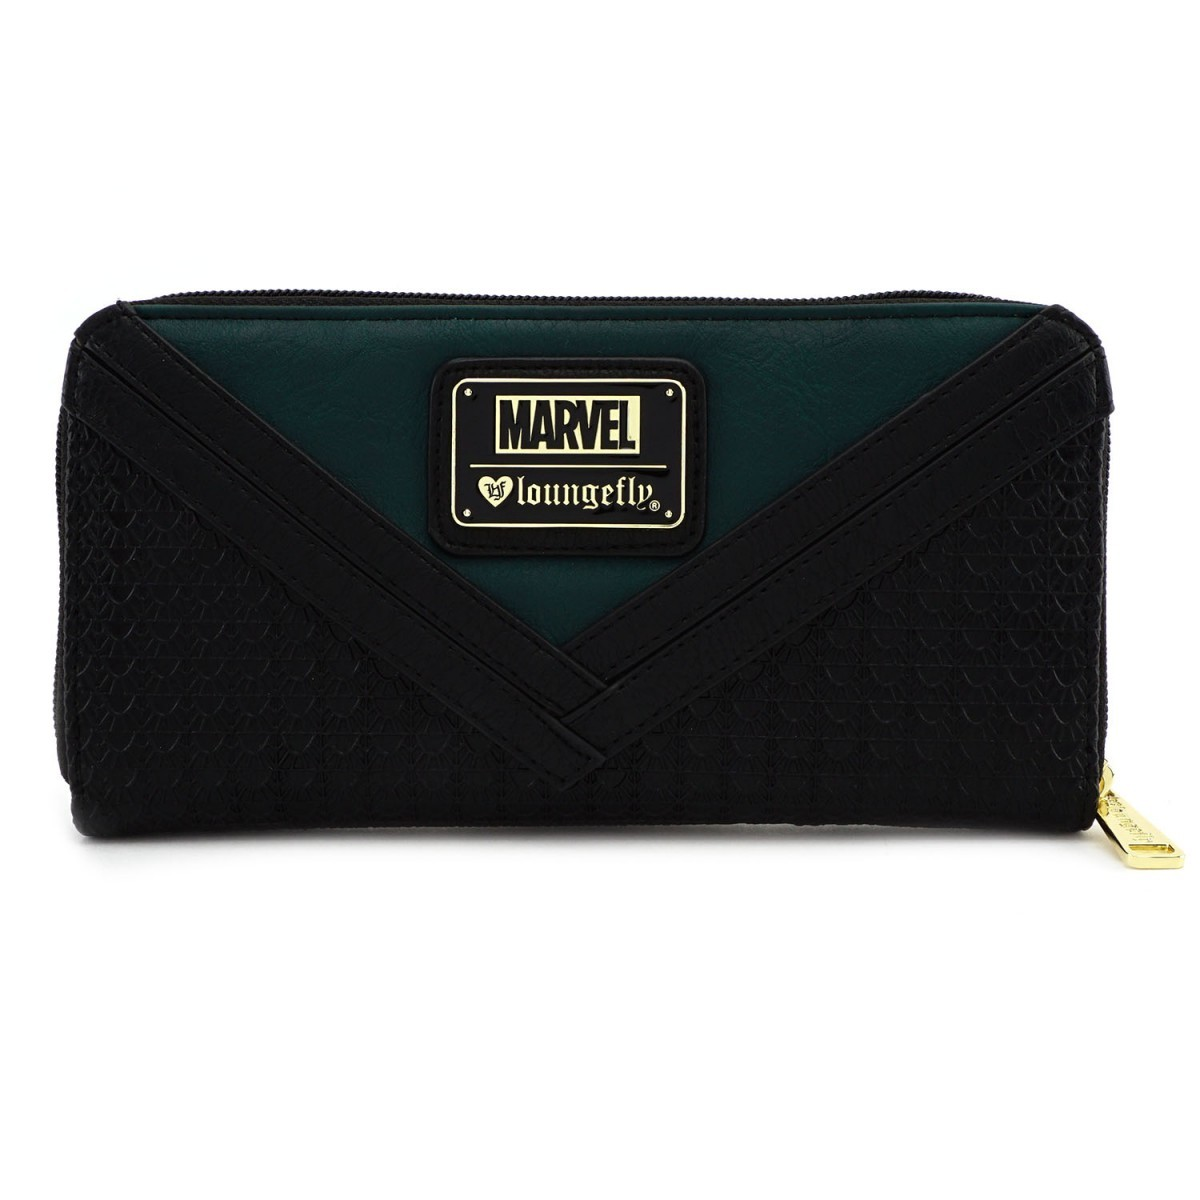 a70d0d4566 ... Loungefly  Marvel Loki Cosplay - Zip Around Wallet image ...